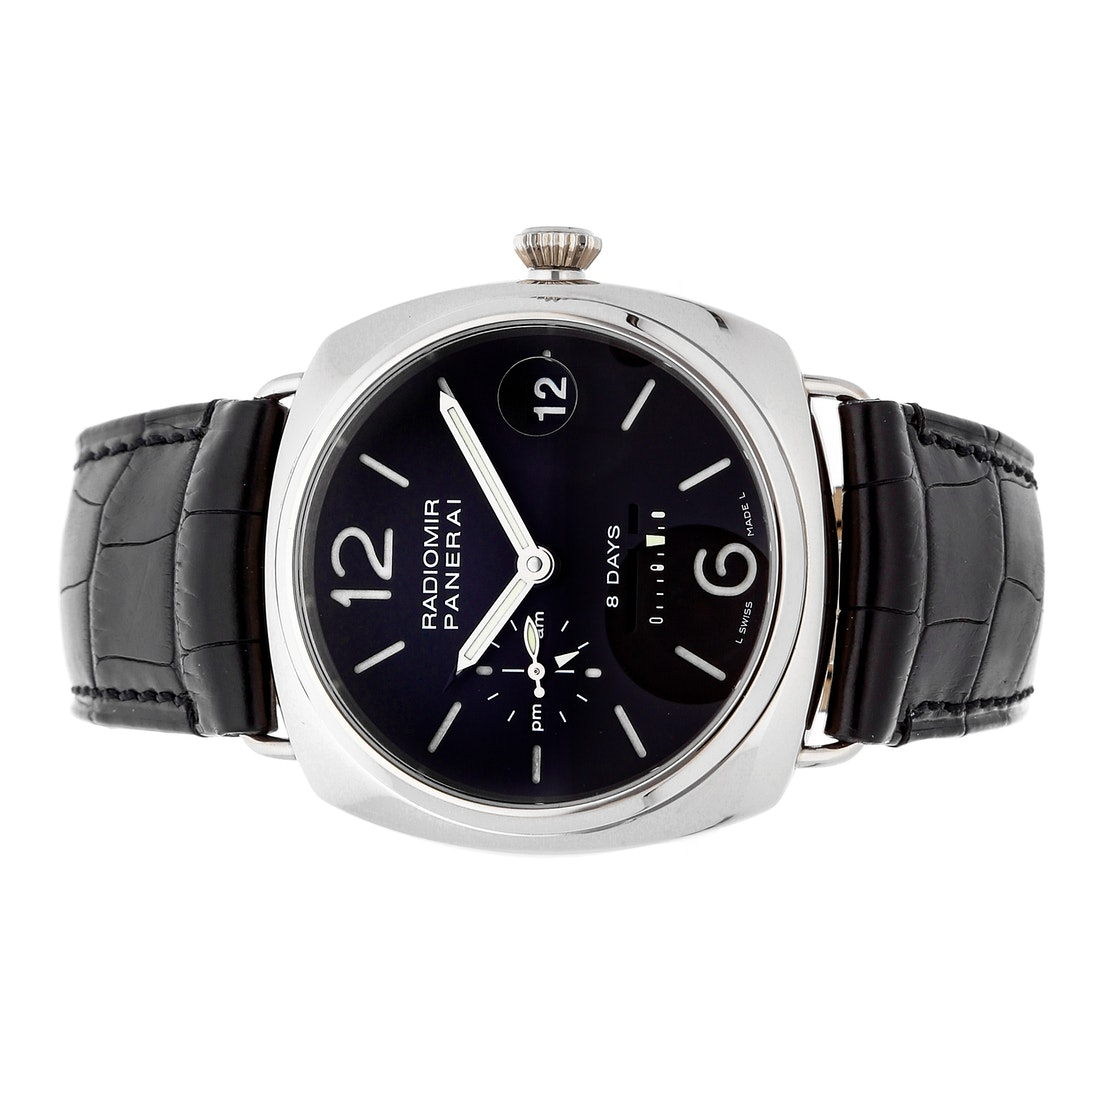 Panerai Radiomir GMT 8-Days Limited Edition PAM 200